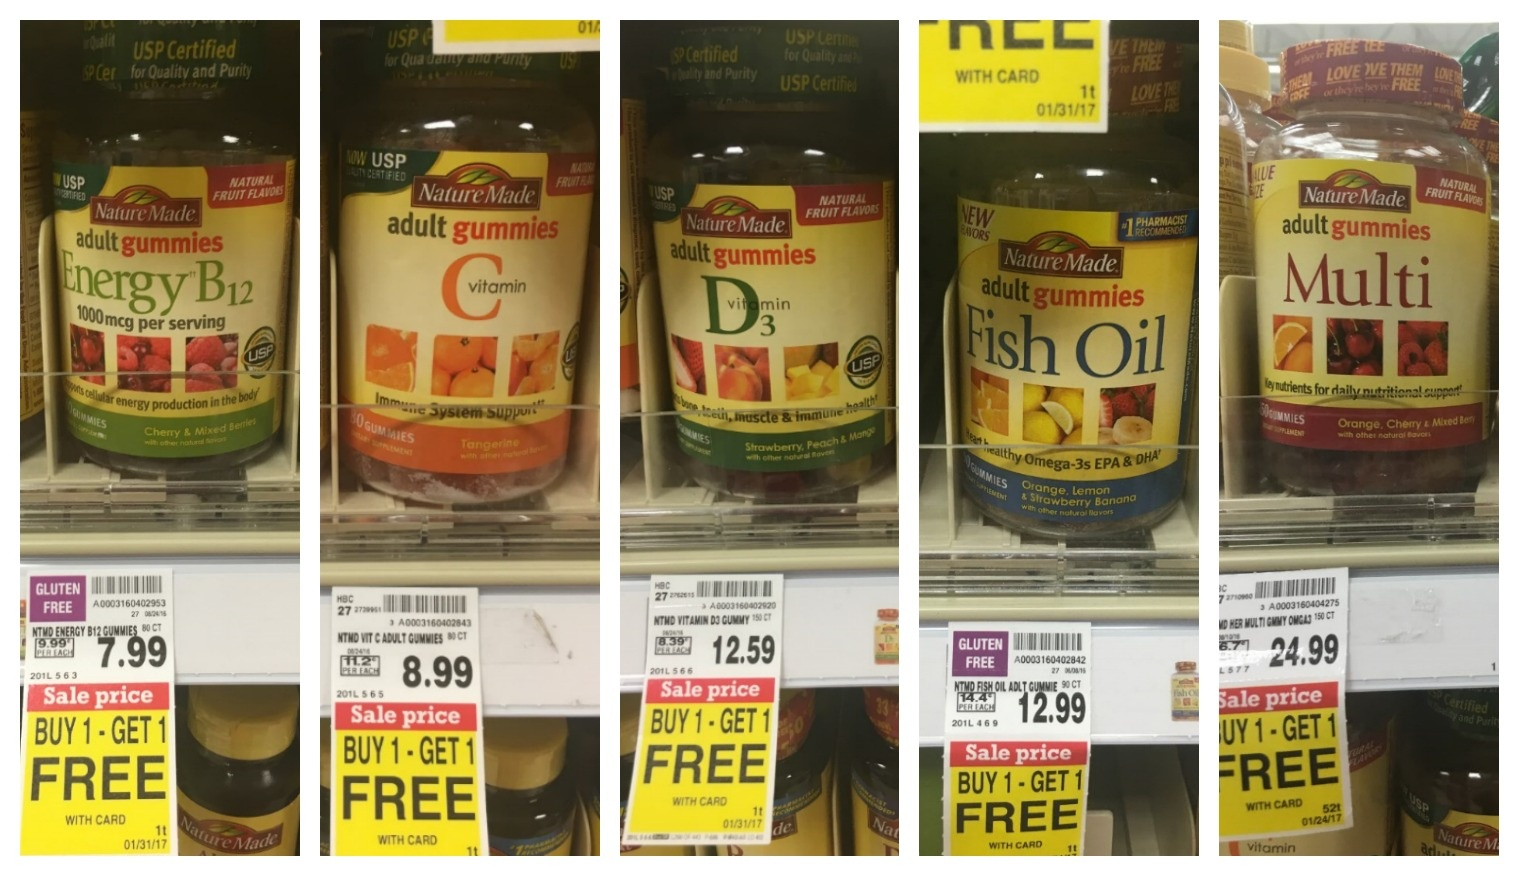 Great Deals On Nature Made Vitamins At Kroger!!   Kroger Krazy - Free Printable Nature Made Vitamin Coupons